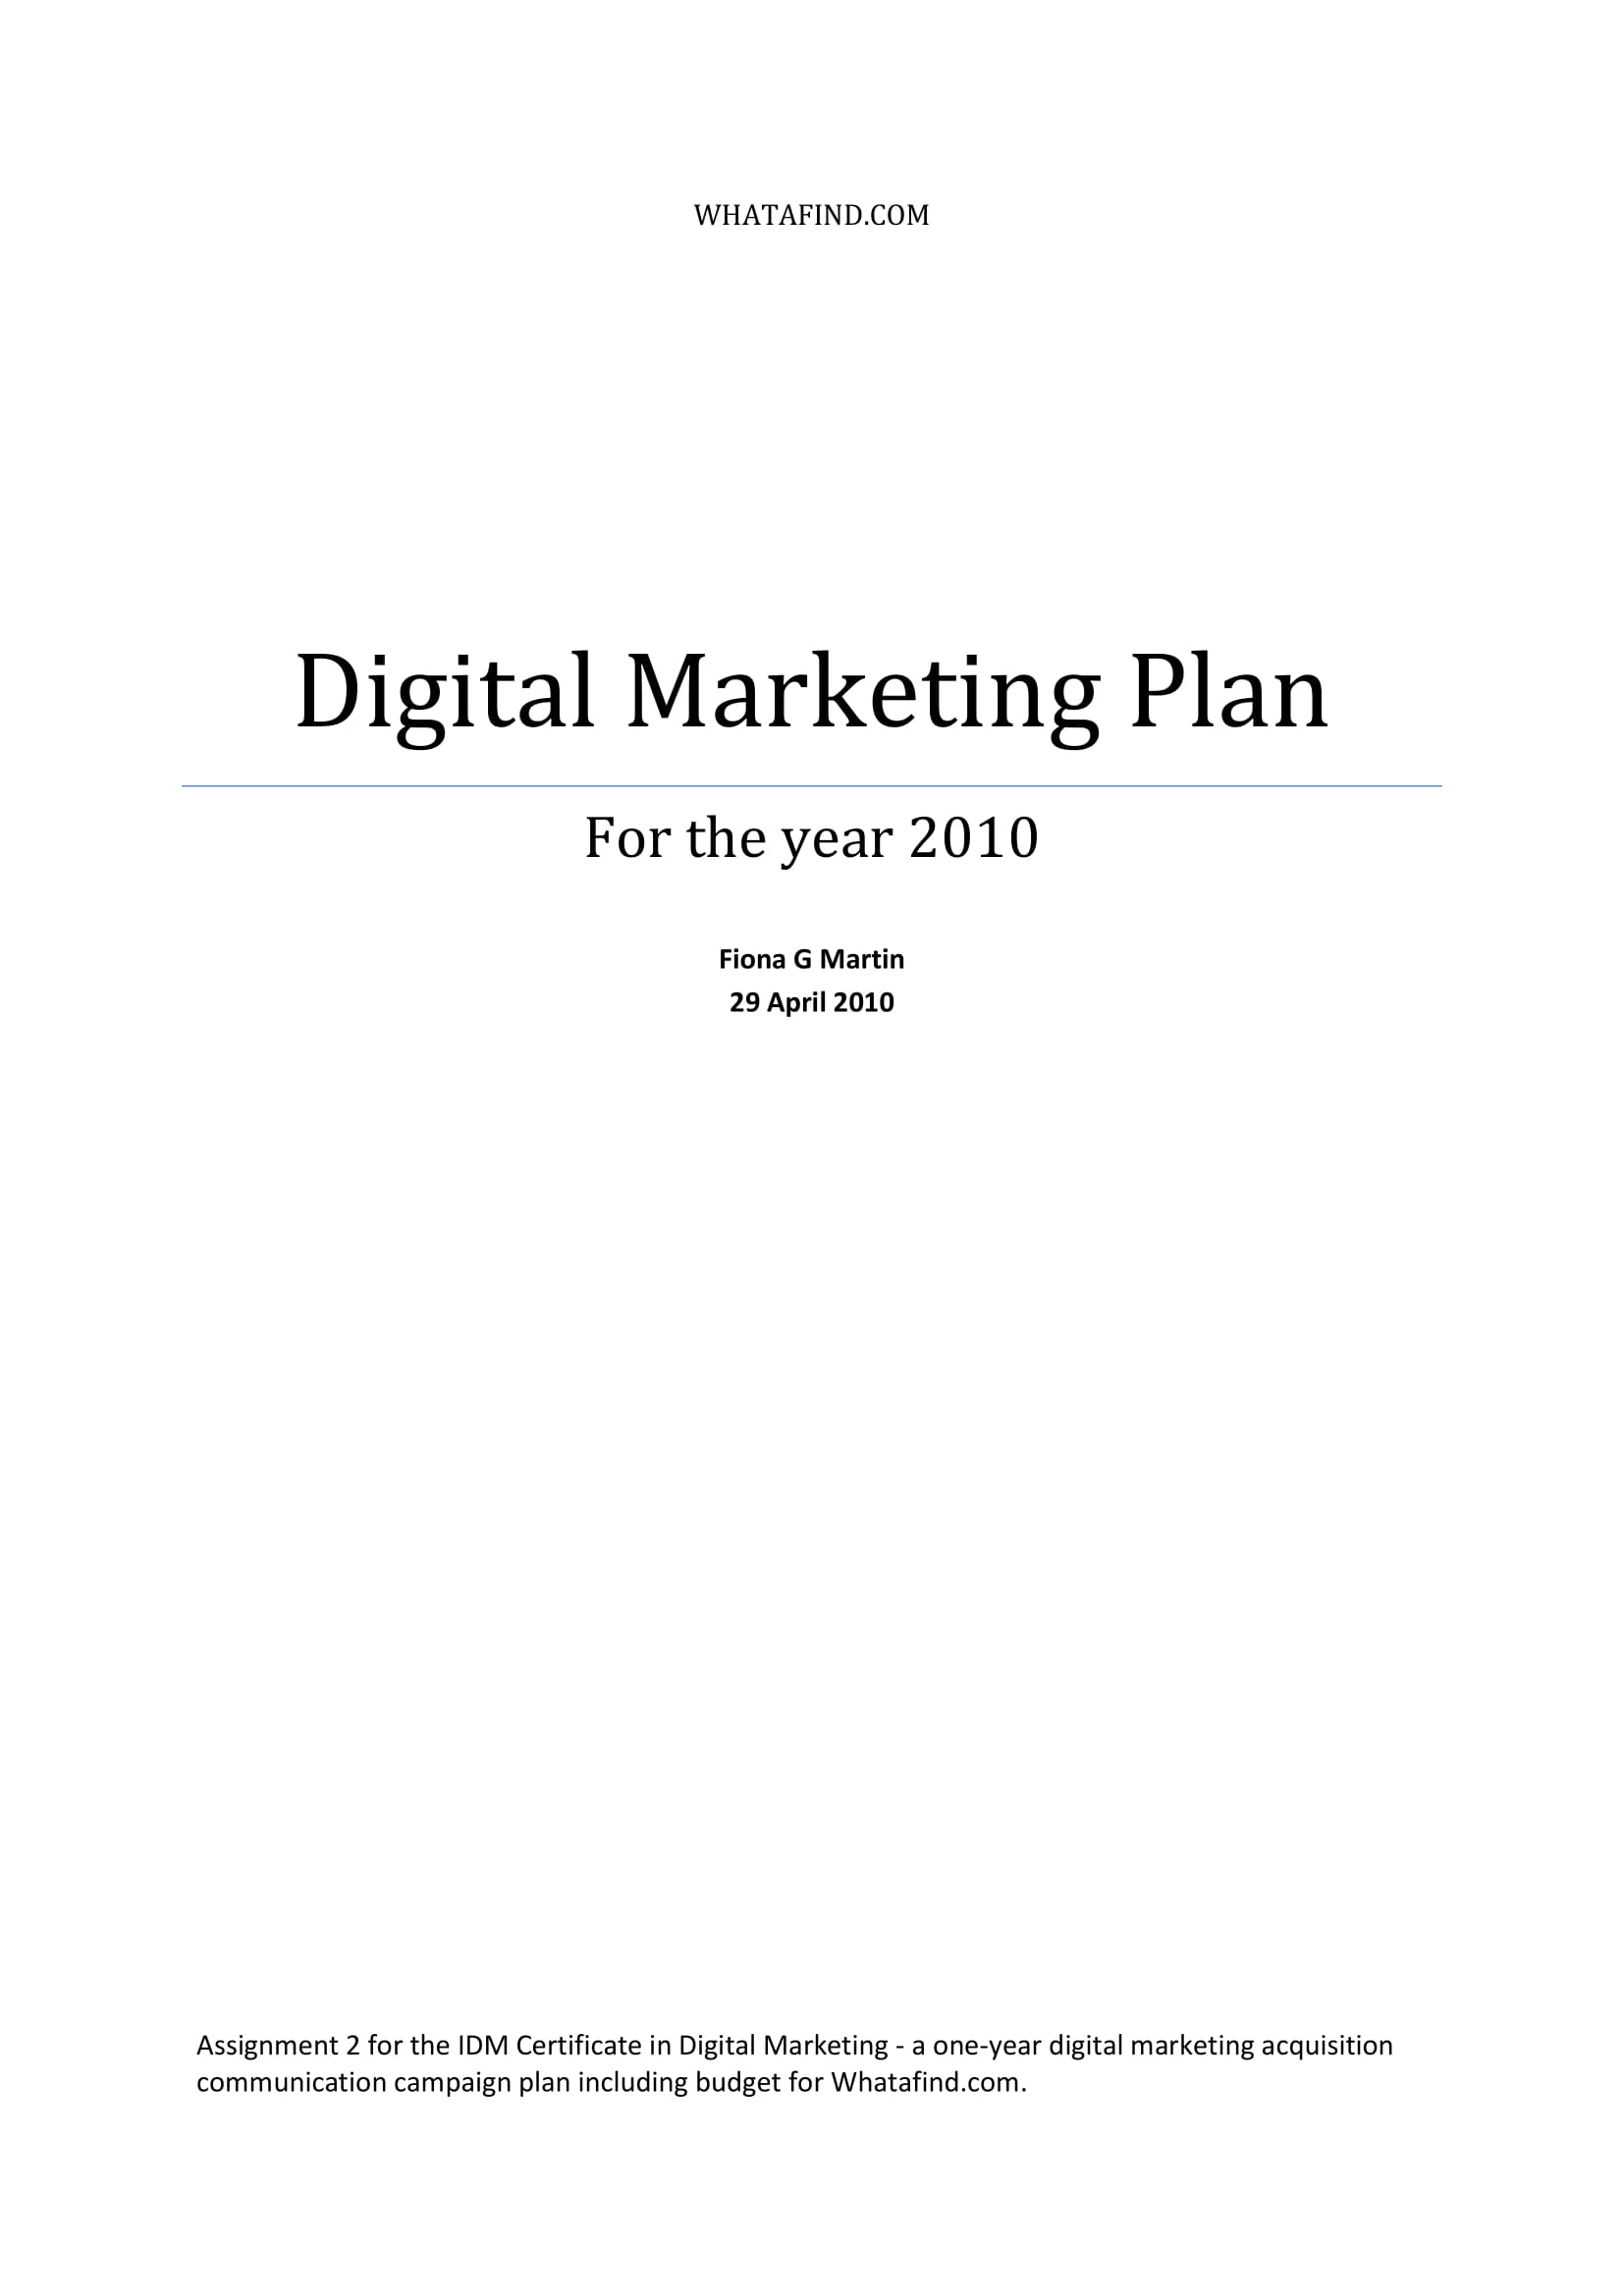 digital marketing plan with affiliate marketing strategies and tactics example 01